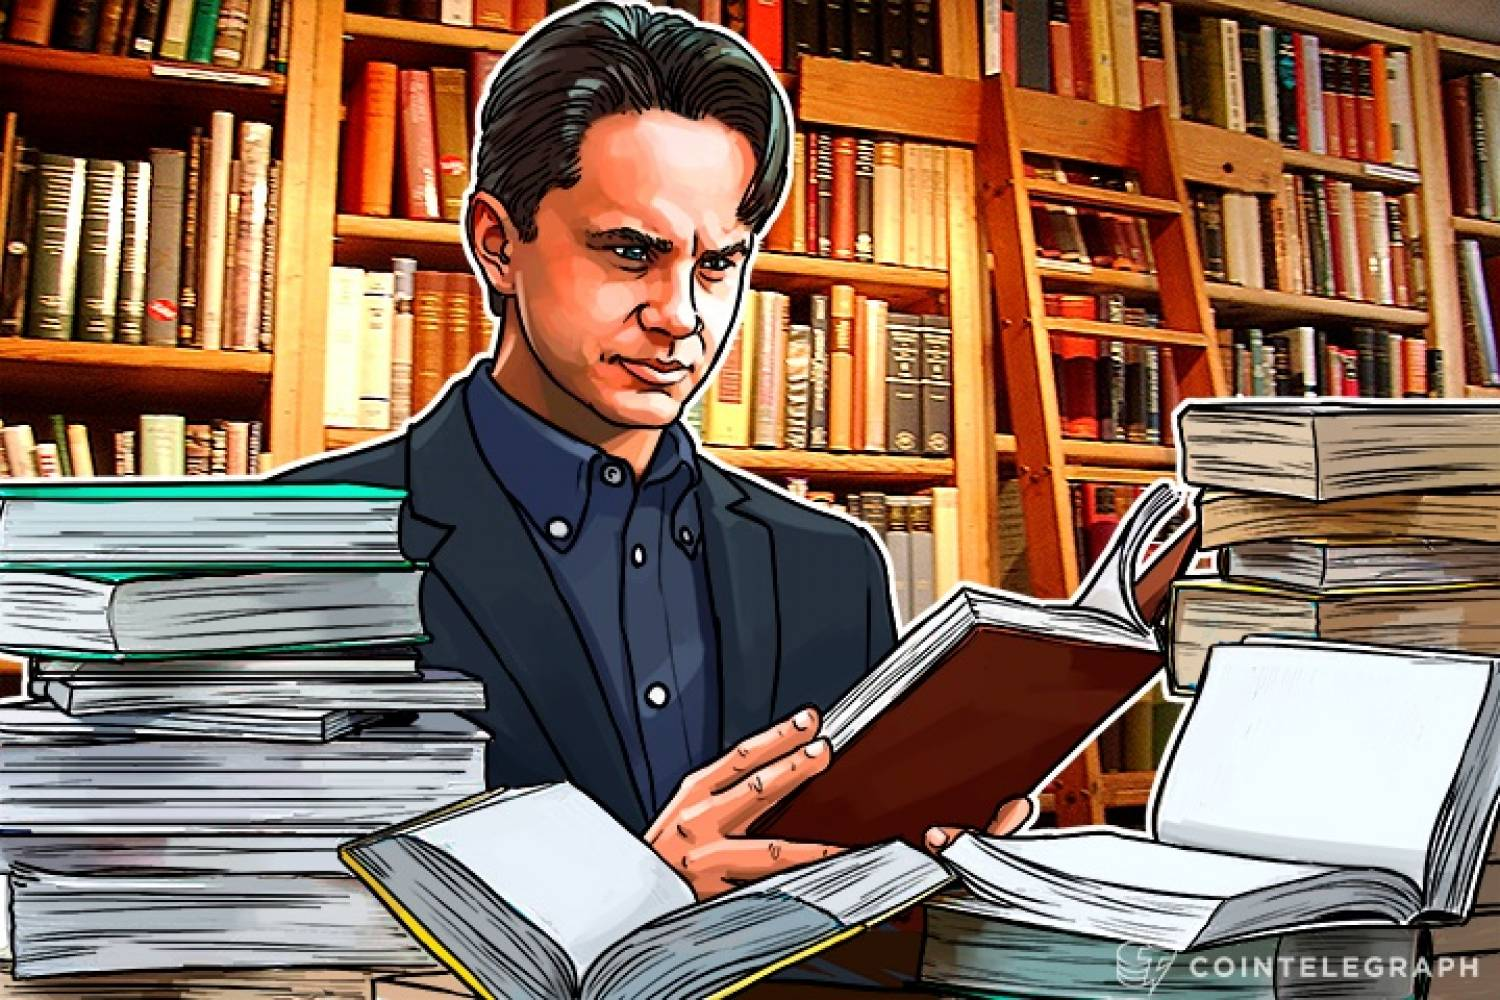 A man reading books about ICO and blockchain